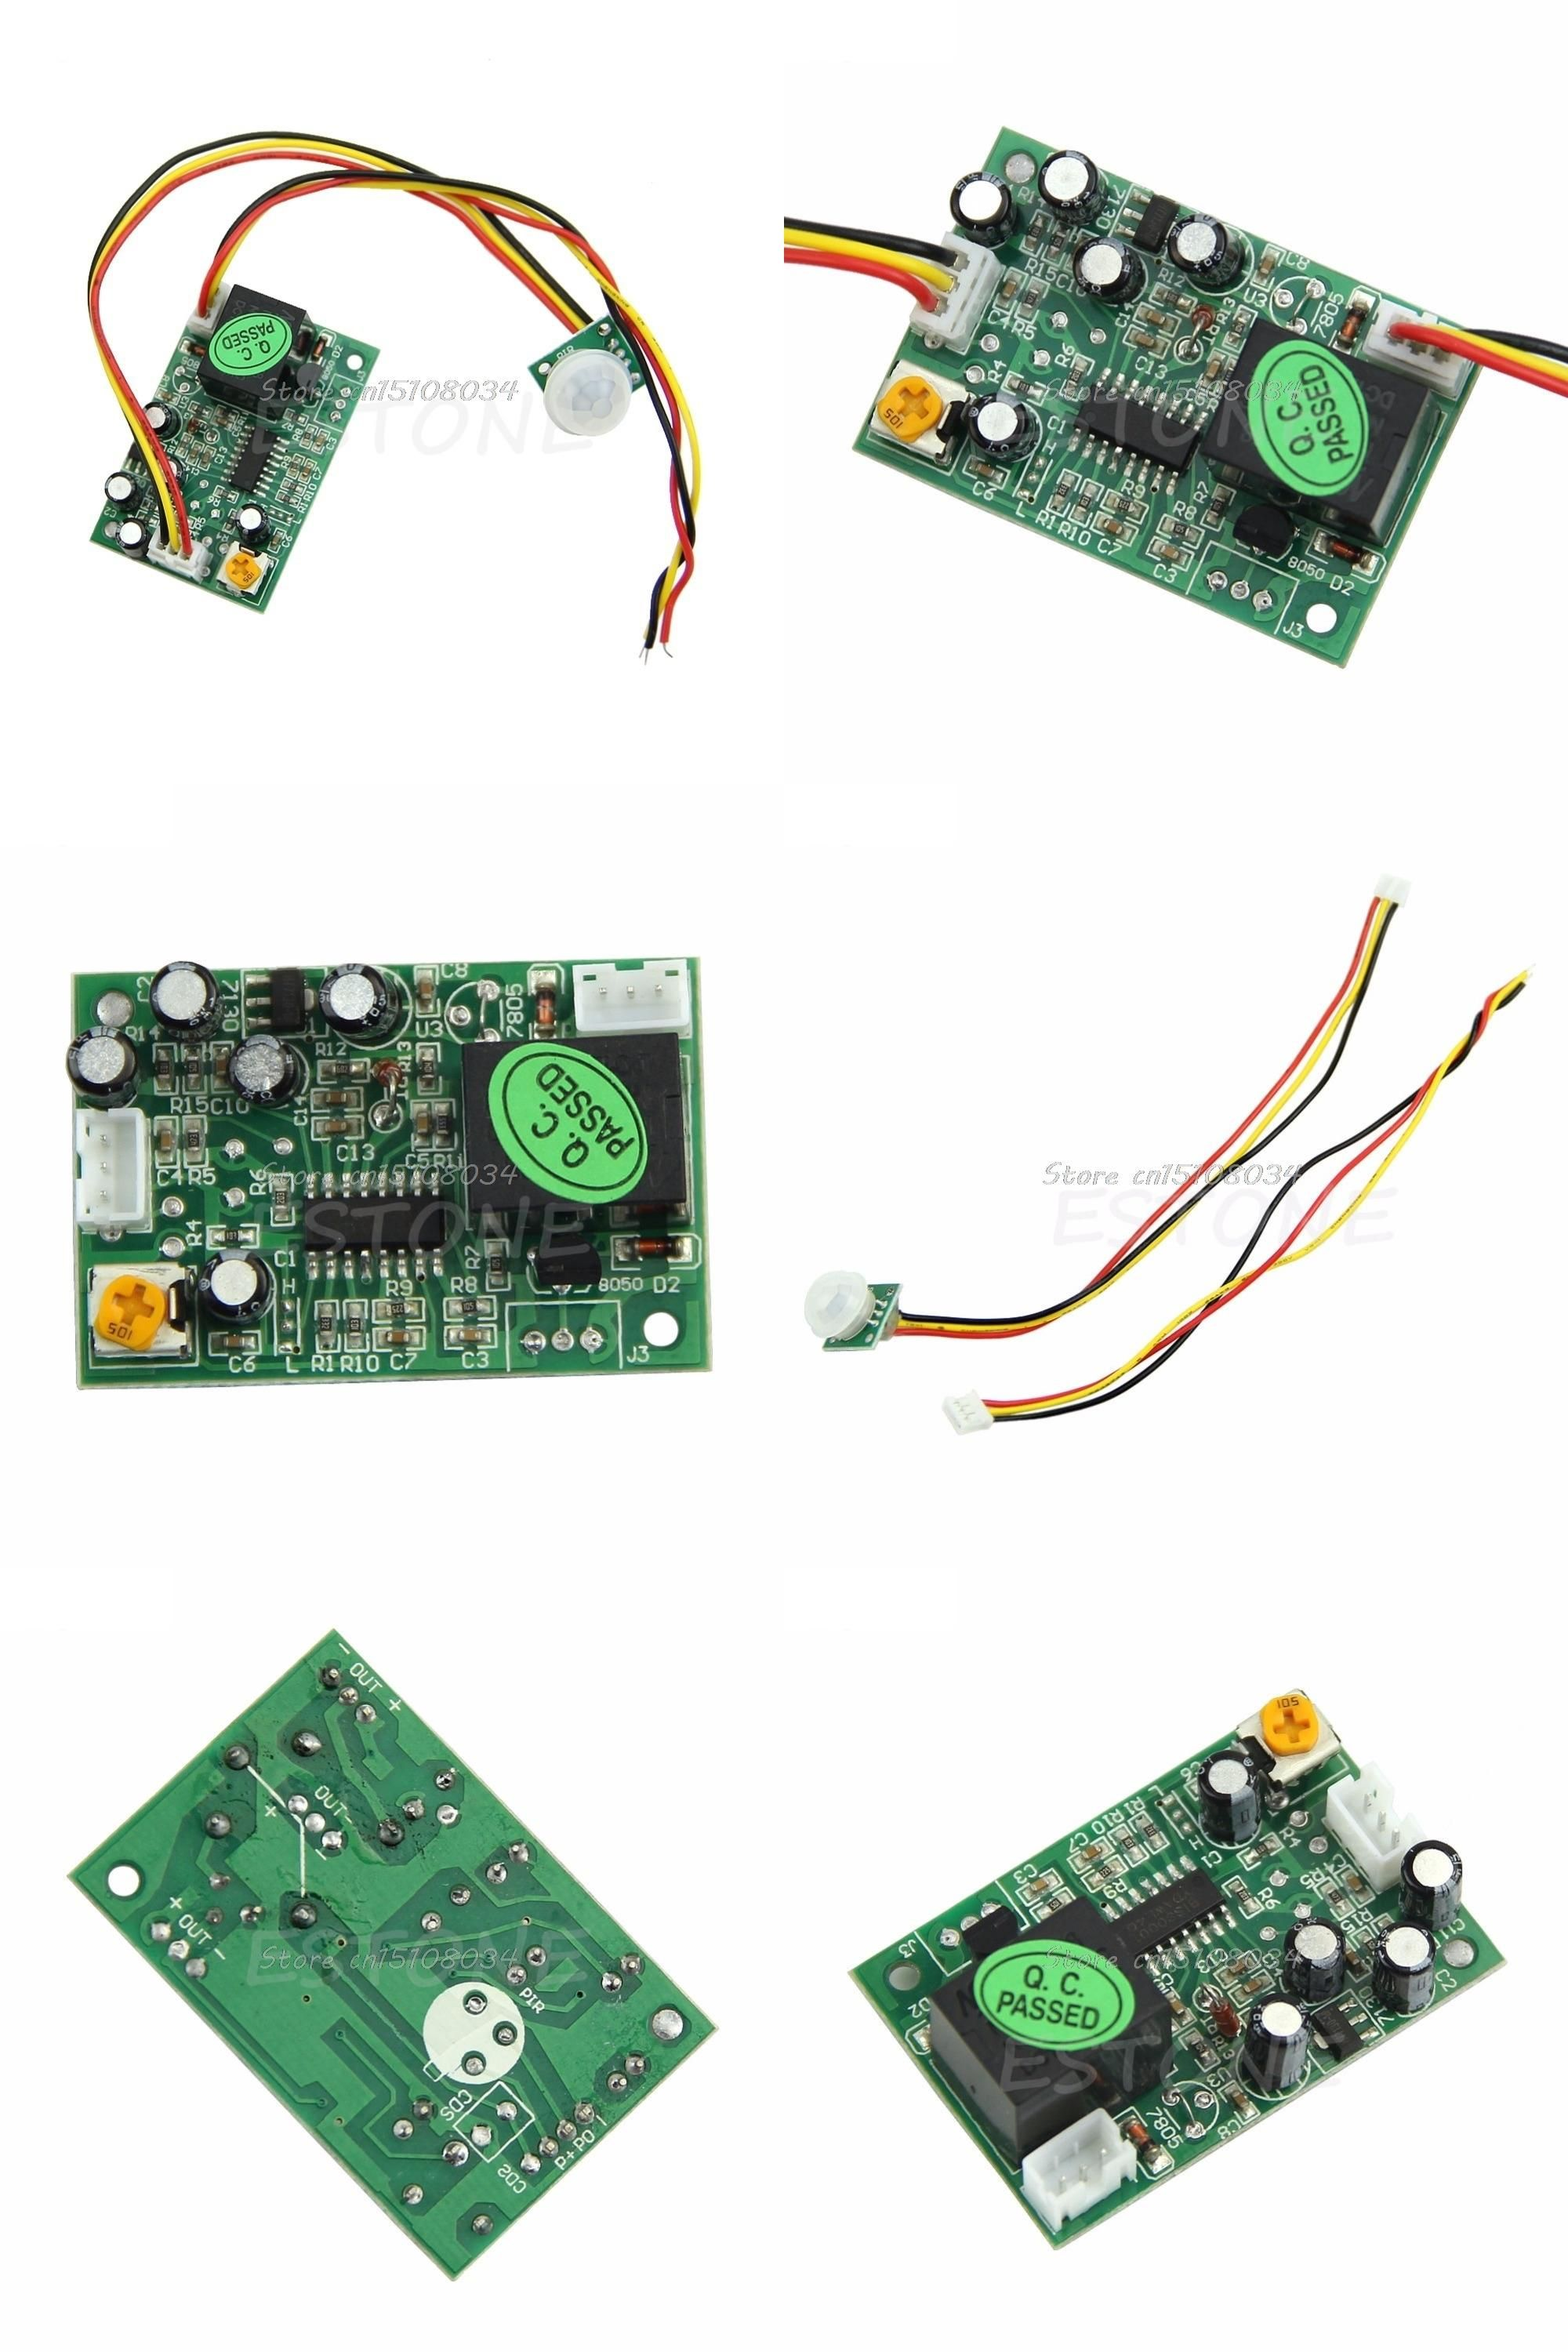 Visit To Buy High Precision Digital Adjustable Dc Power Supply 0 30v 0 5v 39pcs Set Dc Jack For Lab Notebook With Images Computer Repair Notebook Computer Stuff To Buy